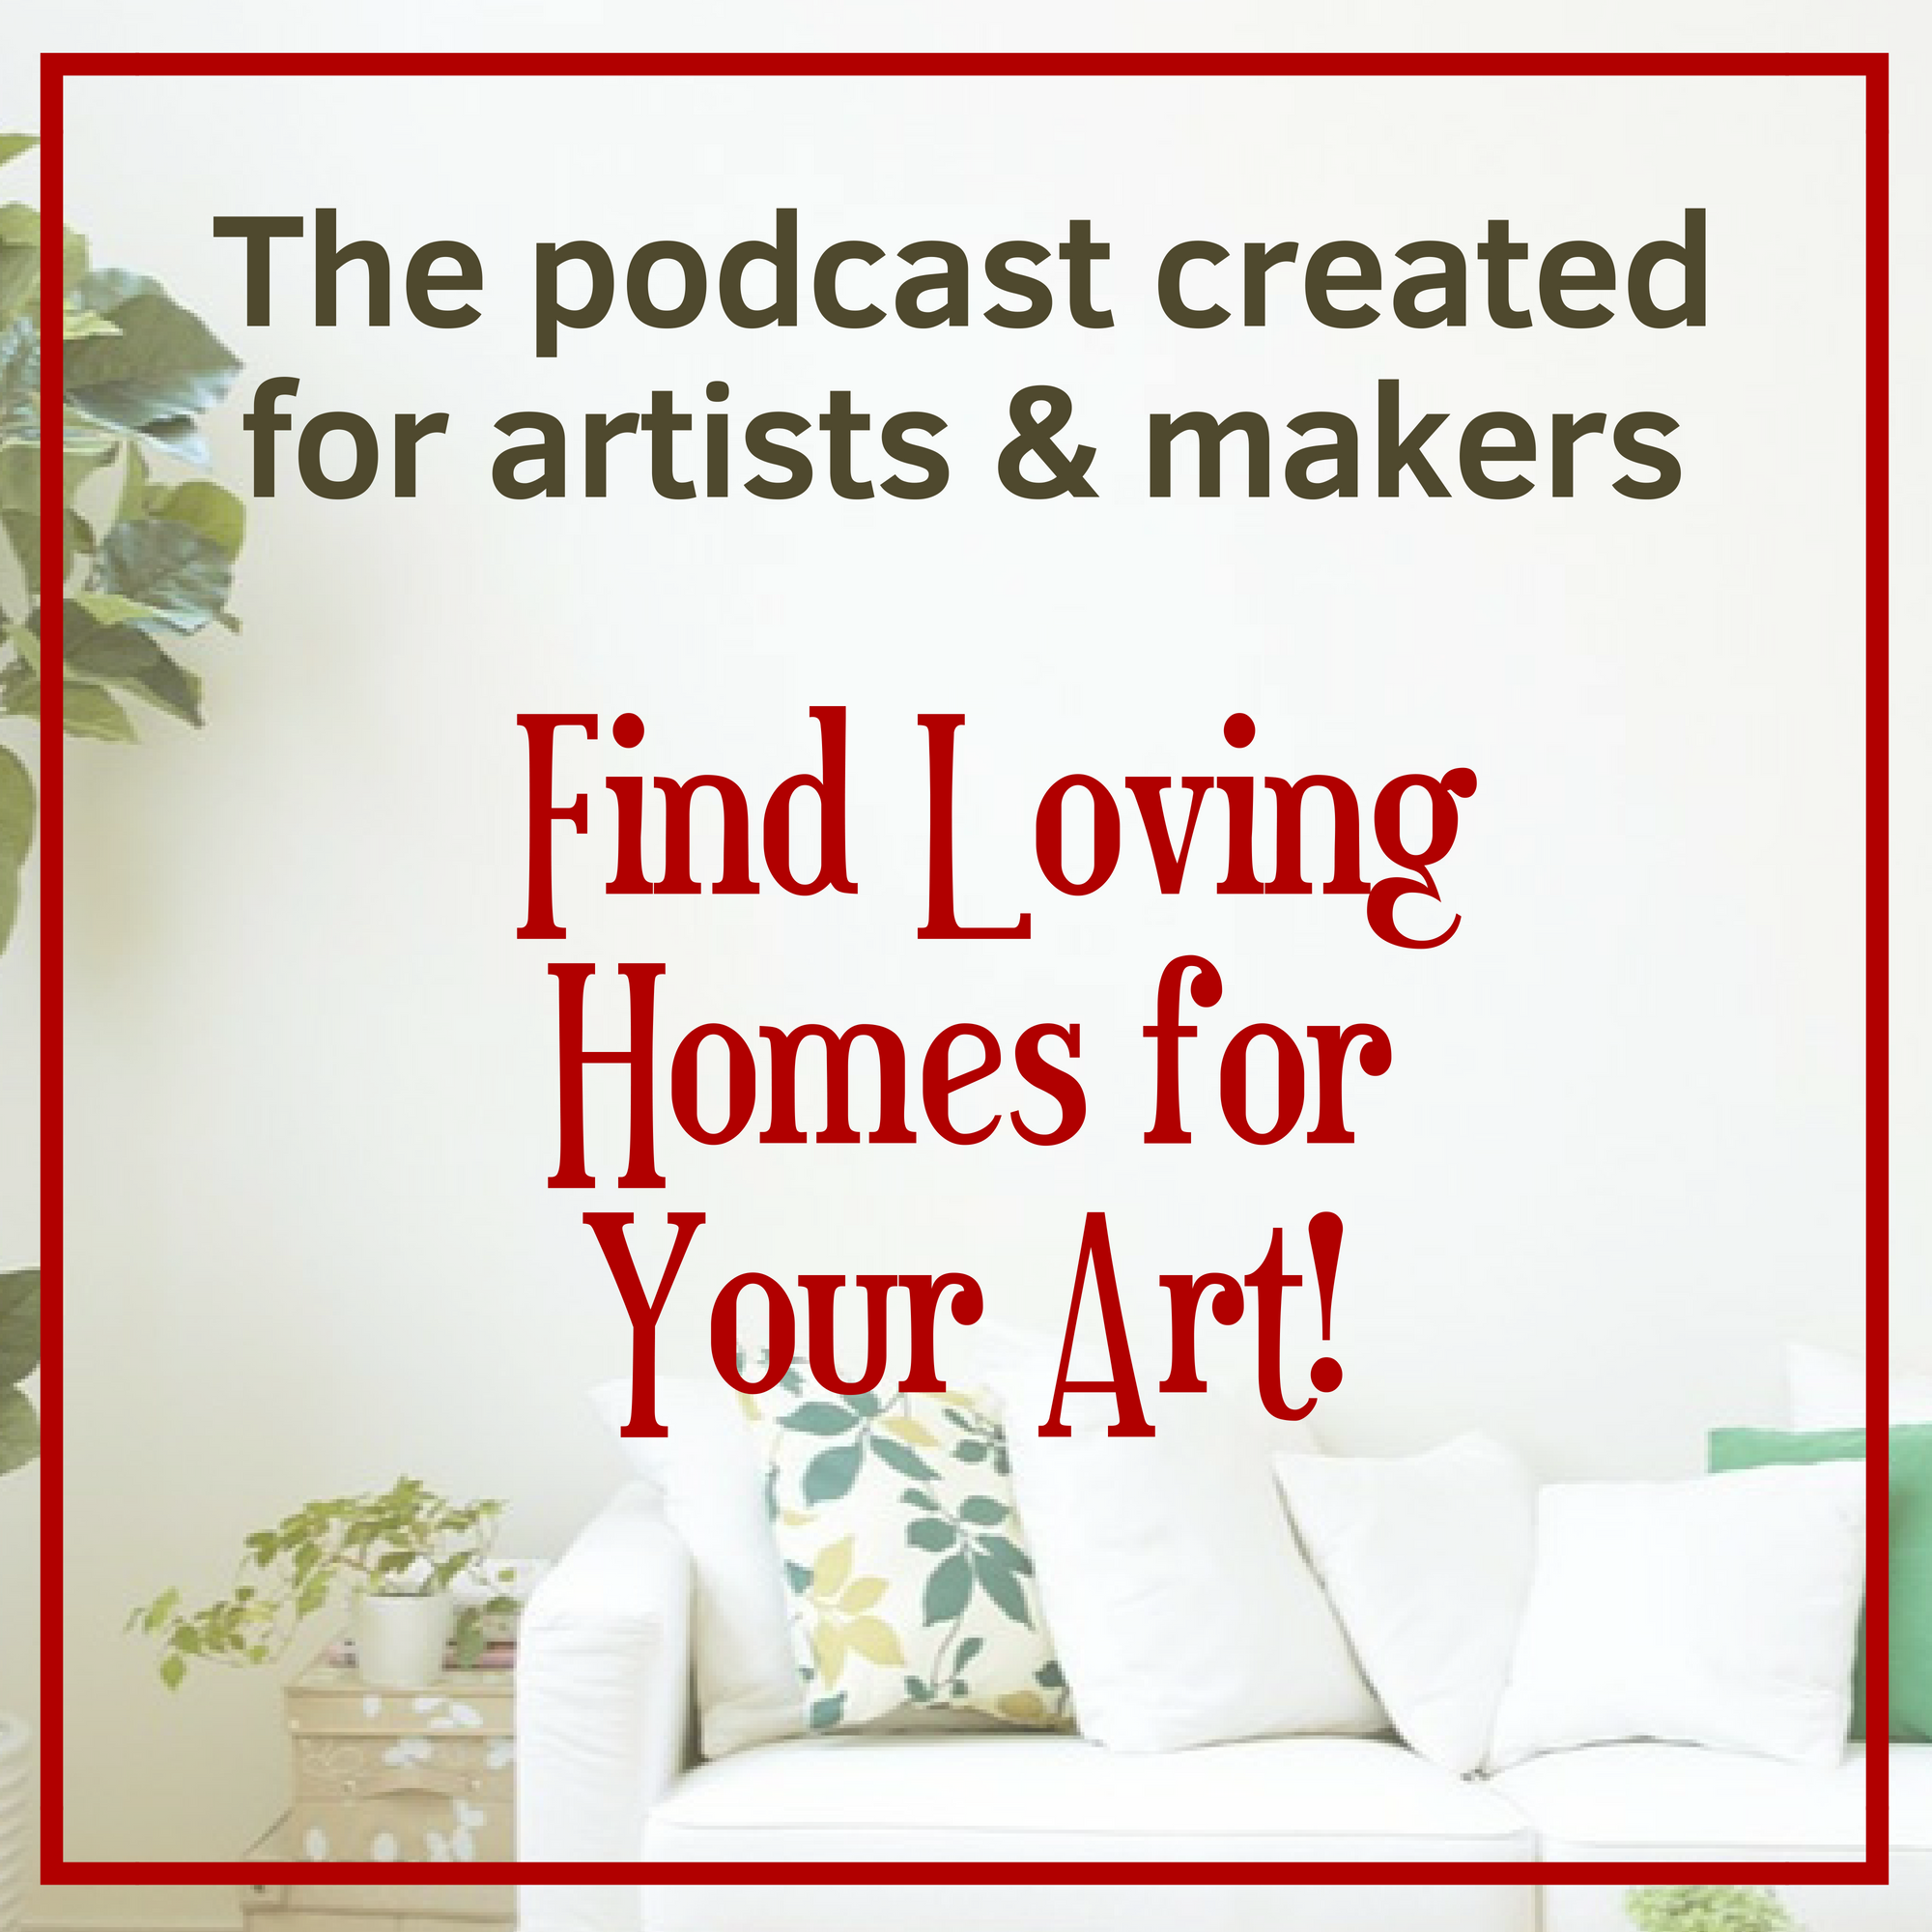 Find Loving Homes for Your Art show art